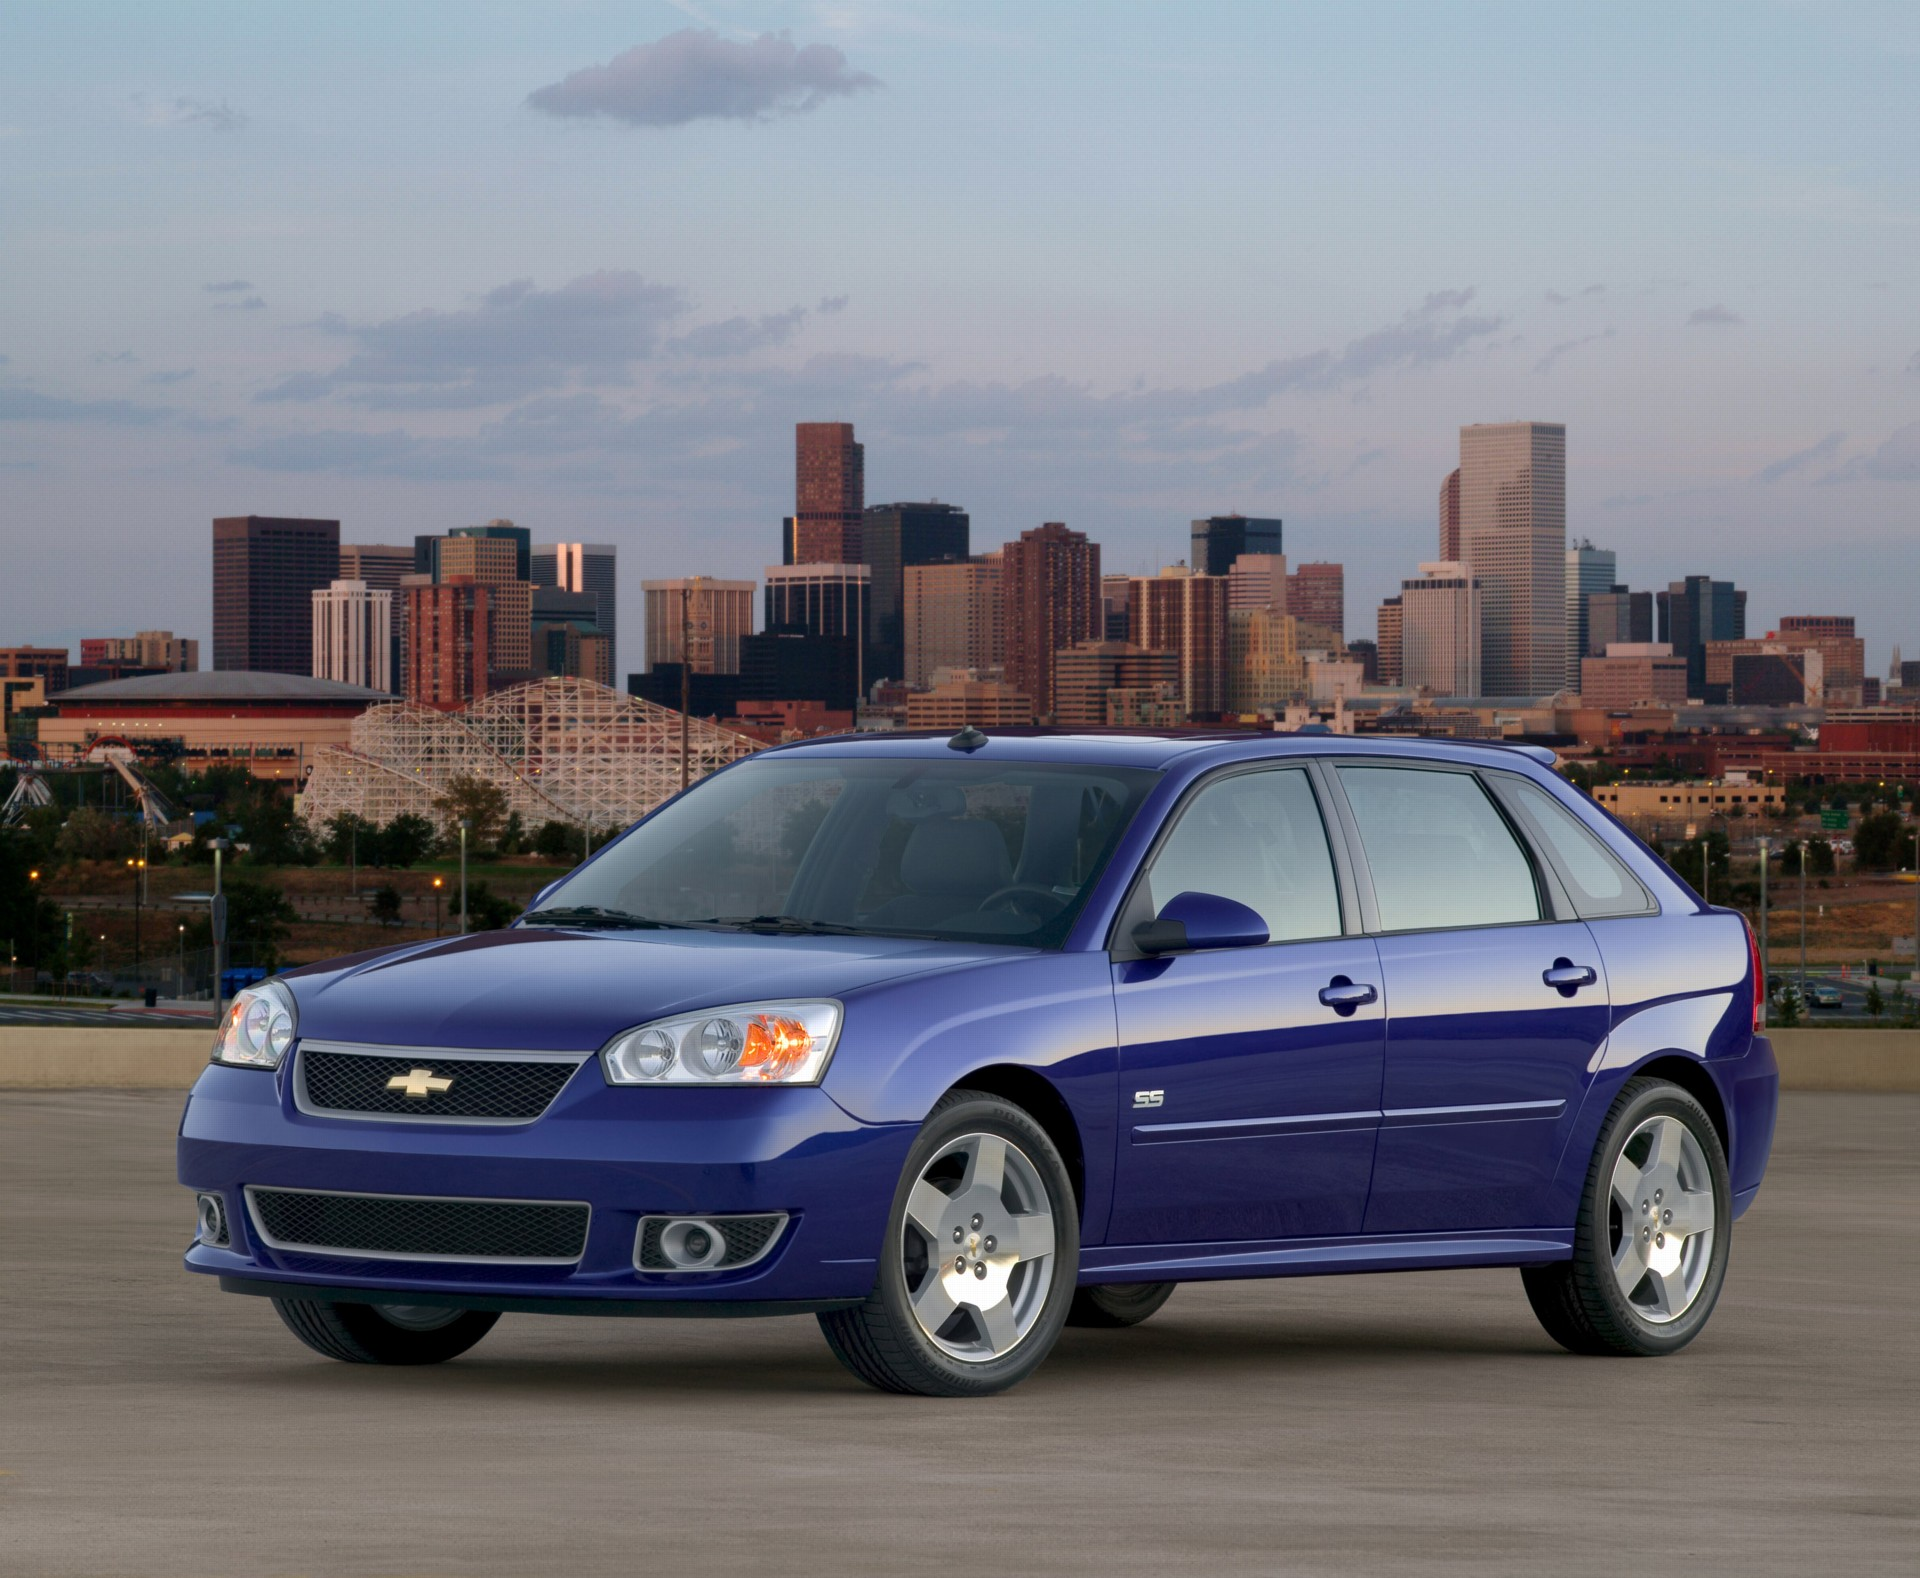 2007 Chevrolet Malibu History, Pictures, Value, Auction Sales ...